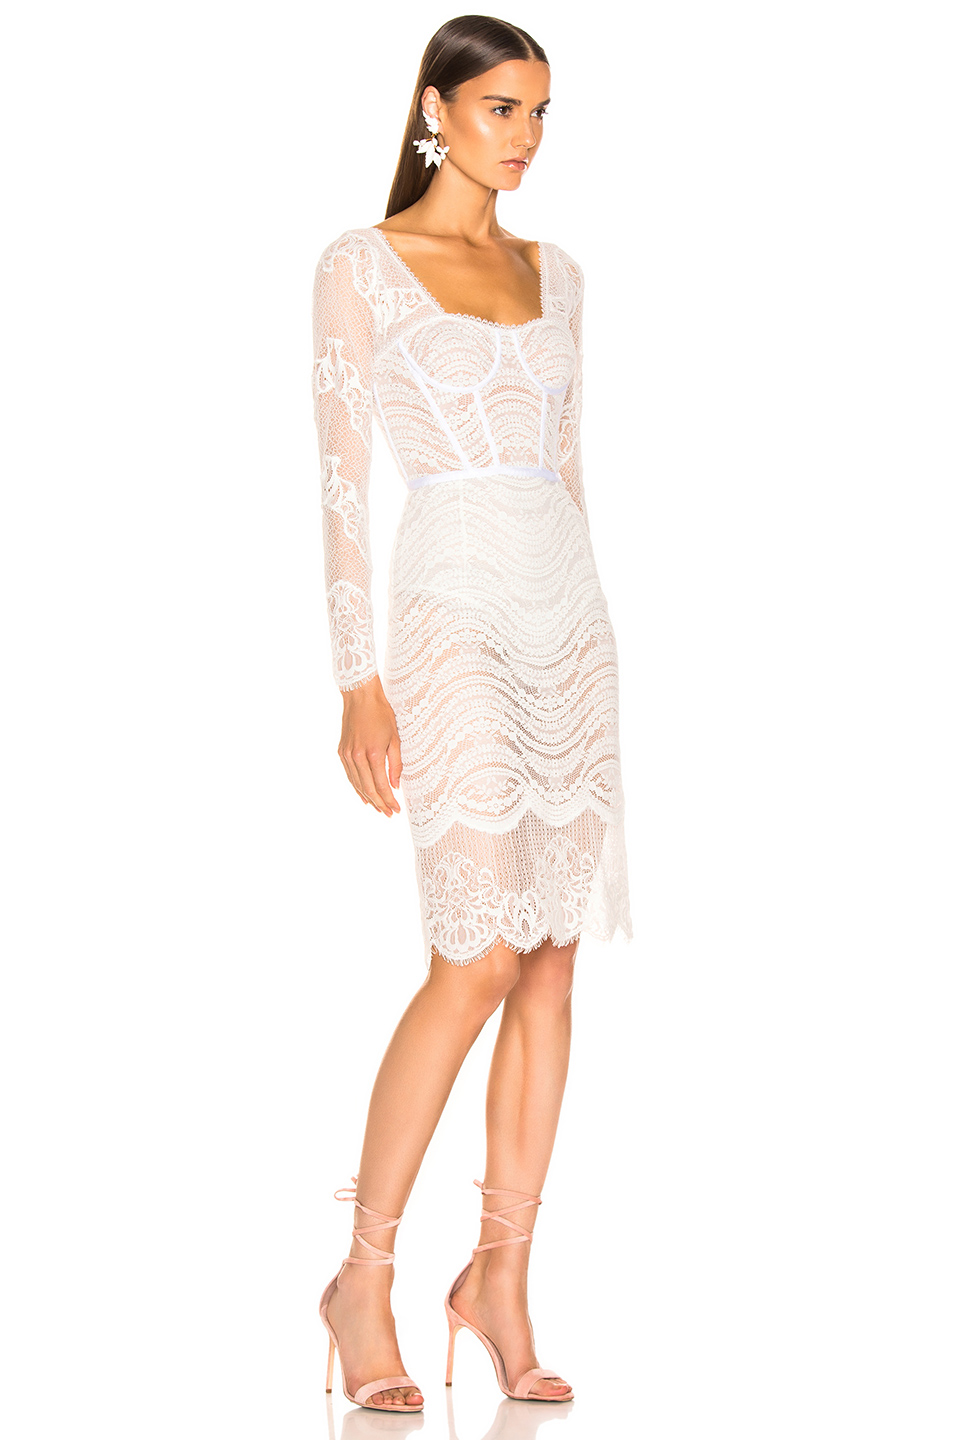 3d792f56d04 Lace Bustier Bodysuit Dress, JONATHAN SIMKHAI